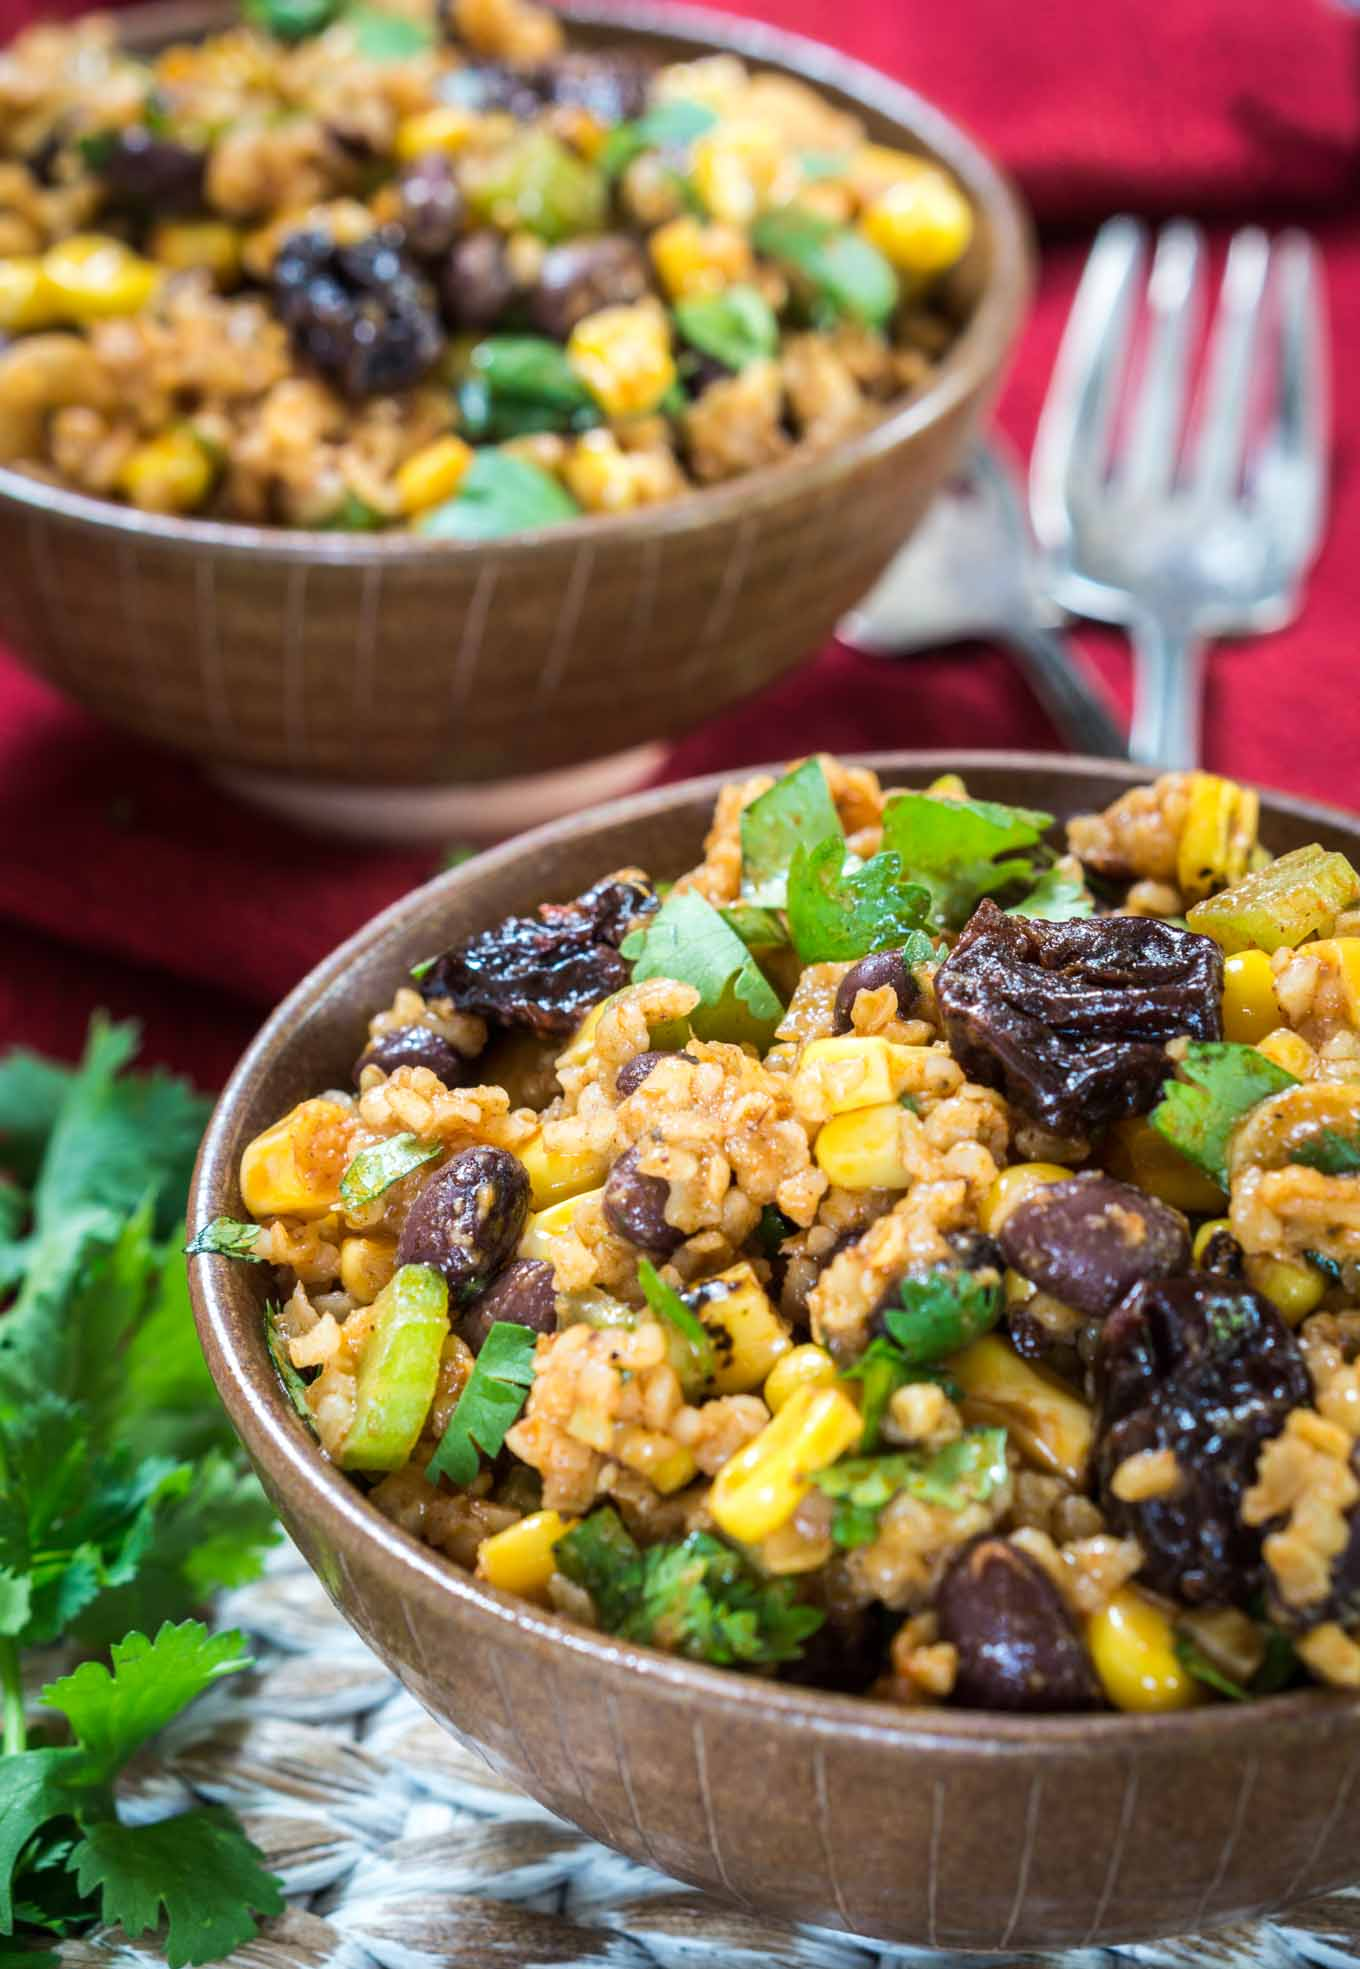 Cherry Chipotle Salad has an explosion of flavors. You get the sweetness of the cherries and finish with a nice chipotle kick. It's a perfect make-ahead salad. | HostessAtHeart.com